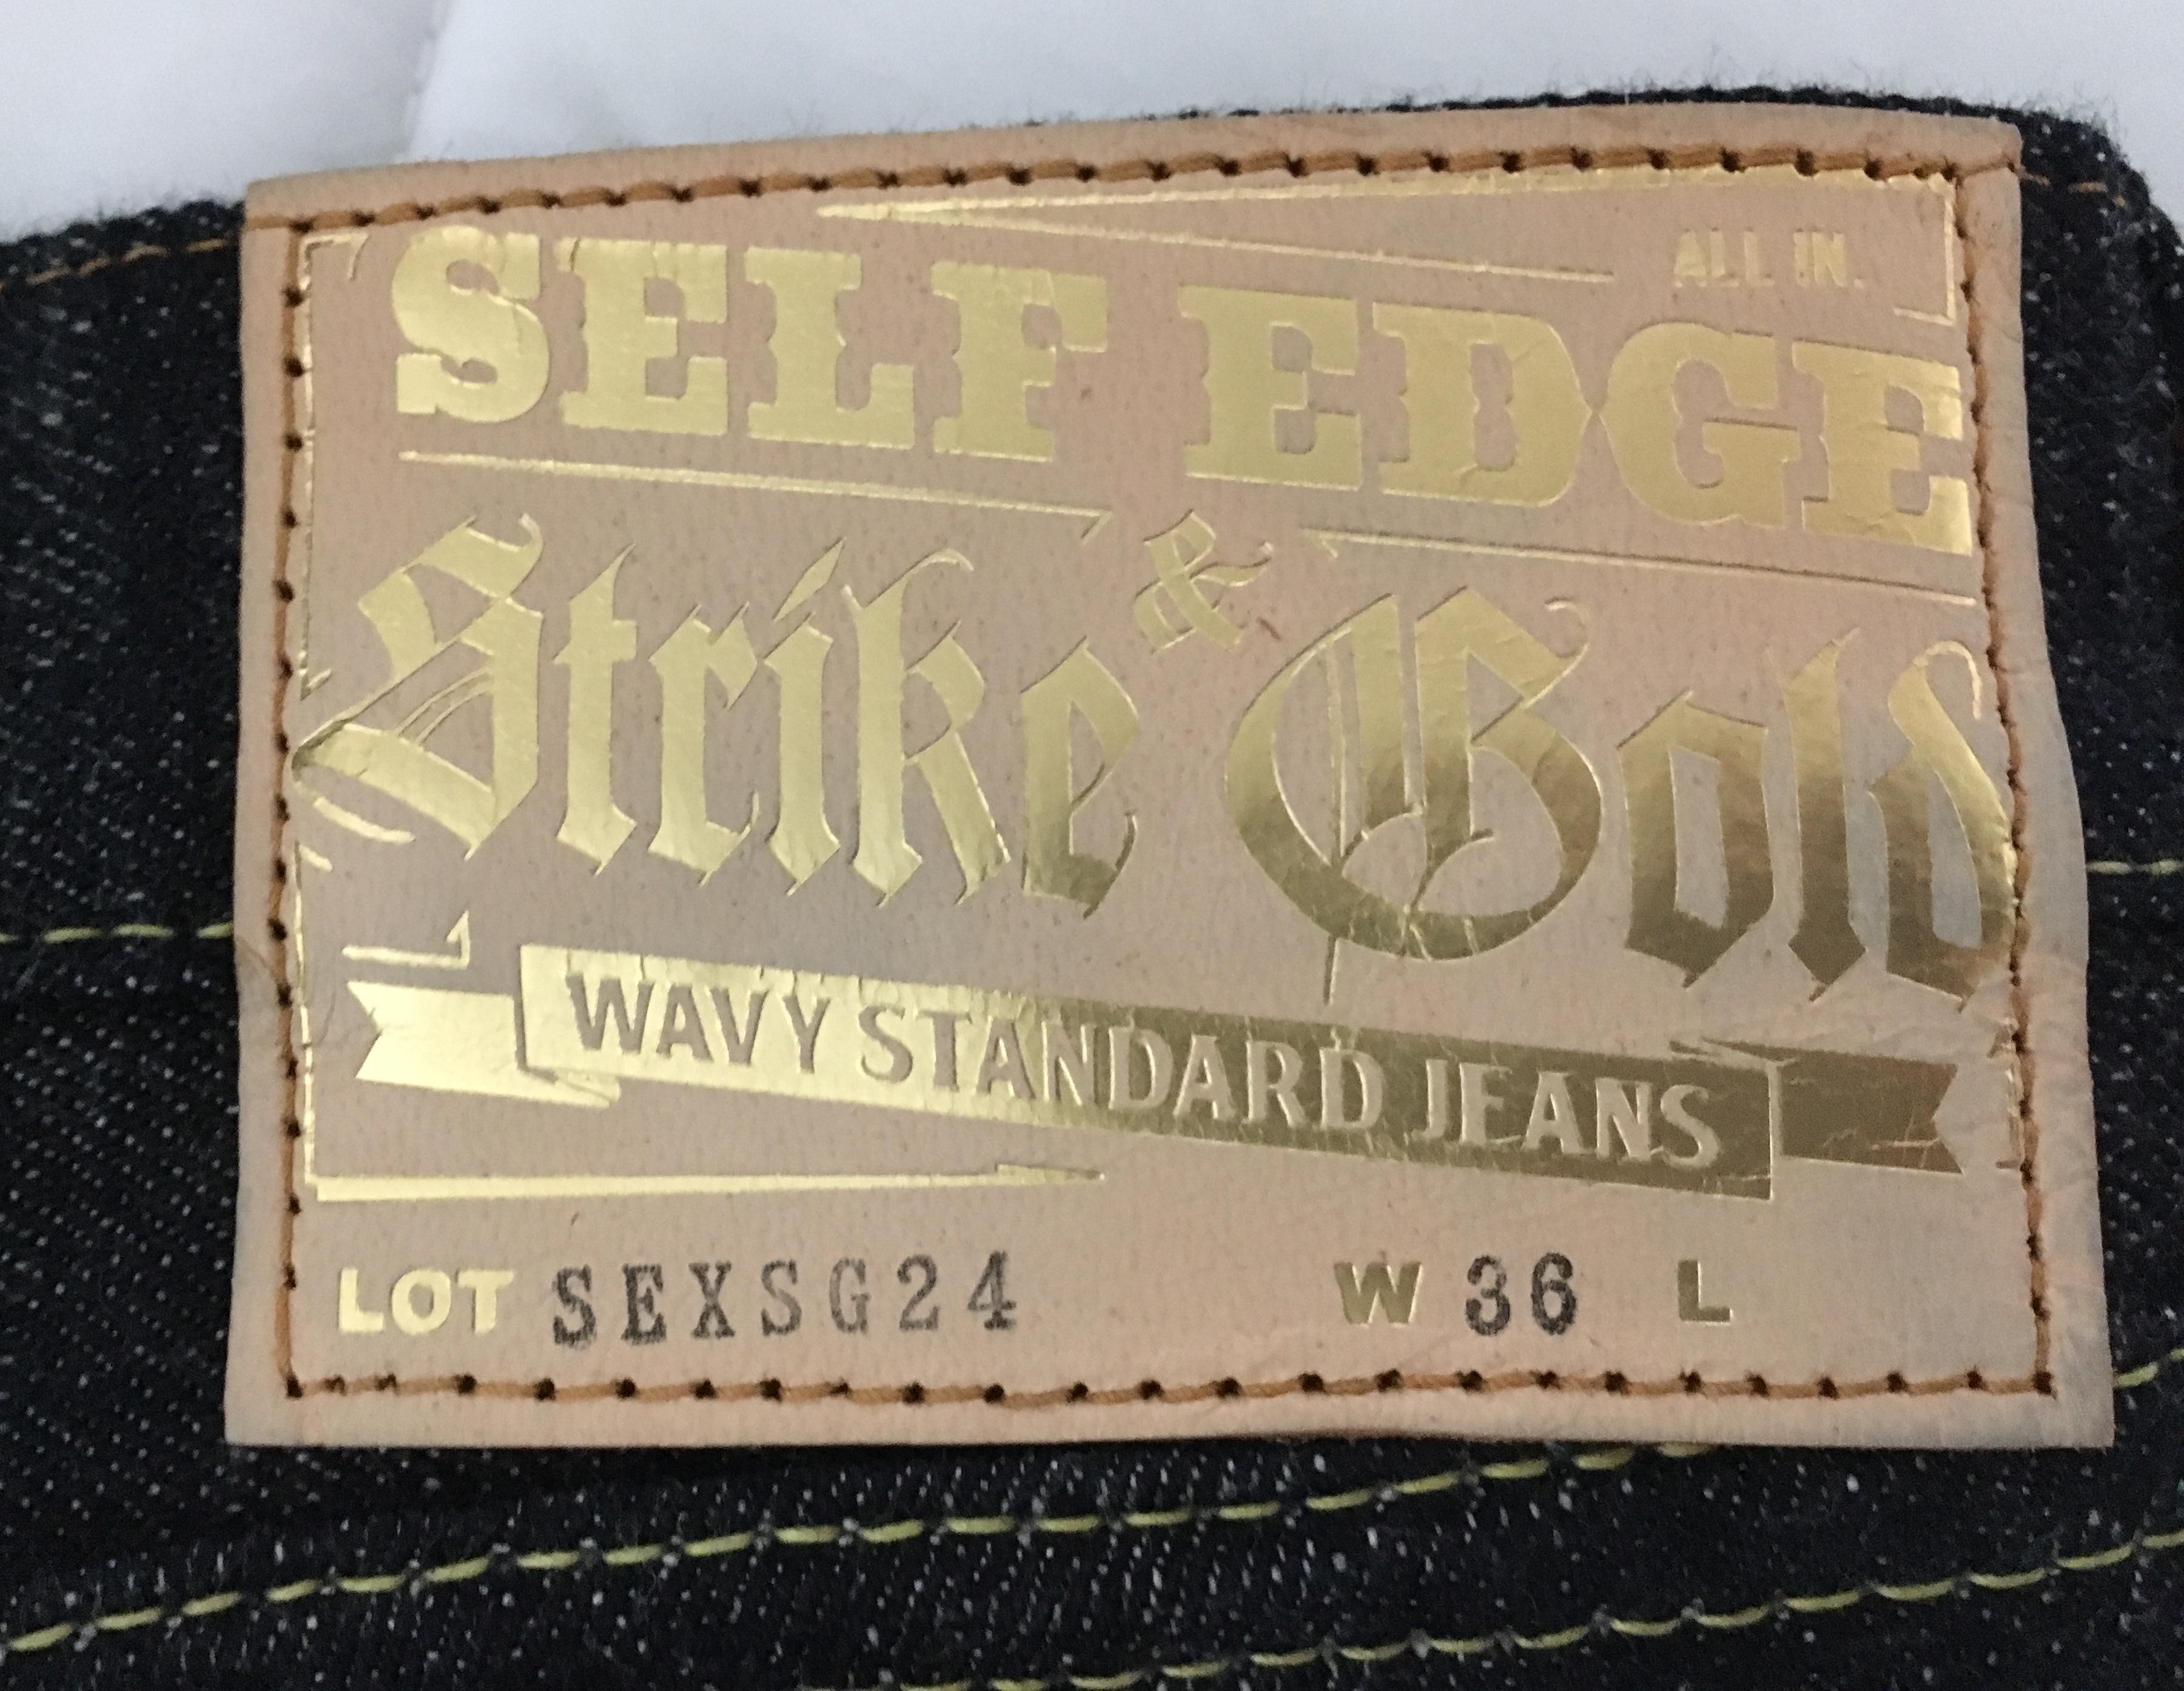 JoeRogan's photos in Self Edge x Strike Gold SEXSG24 Wavy Standard Size 36 (runs small fit 34)